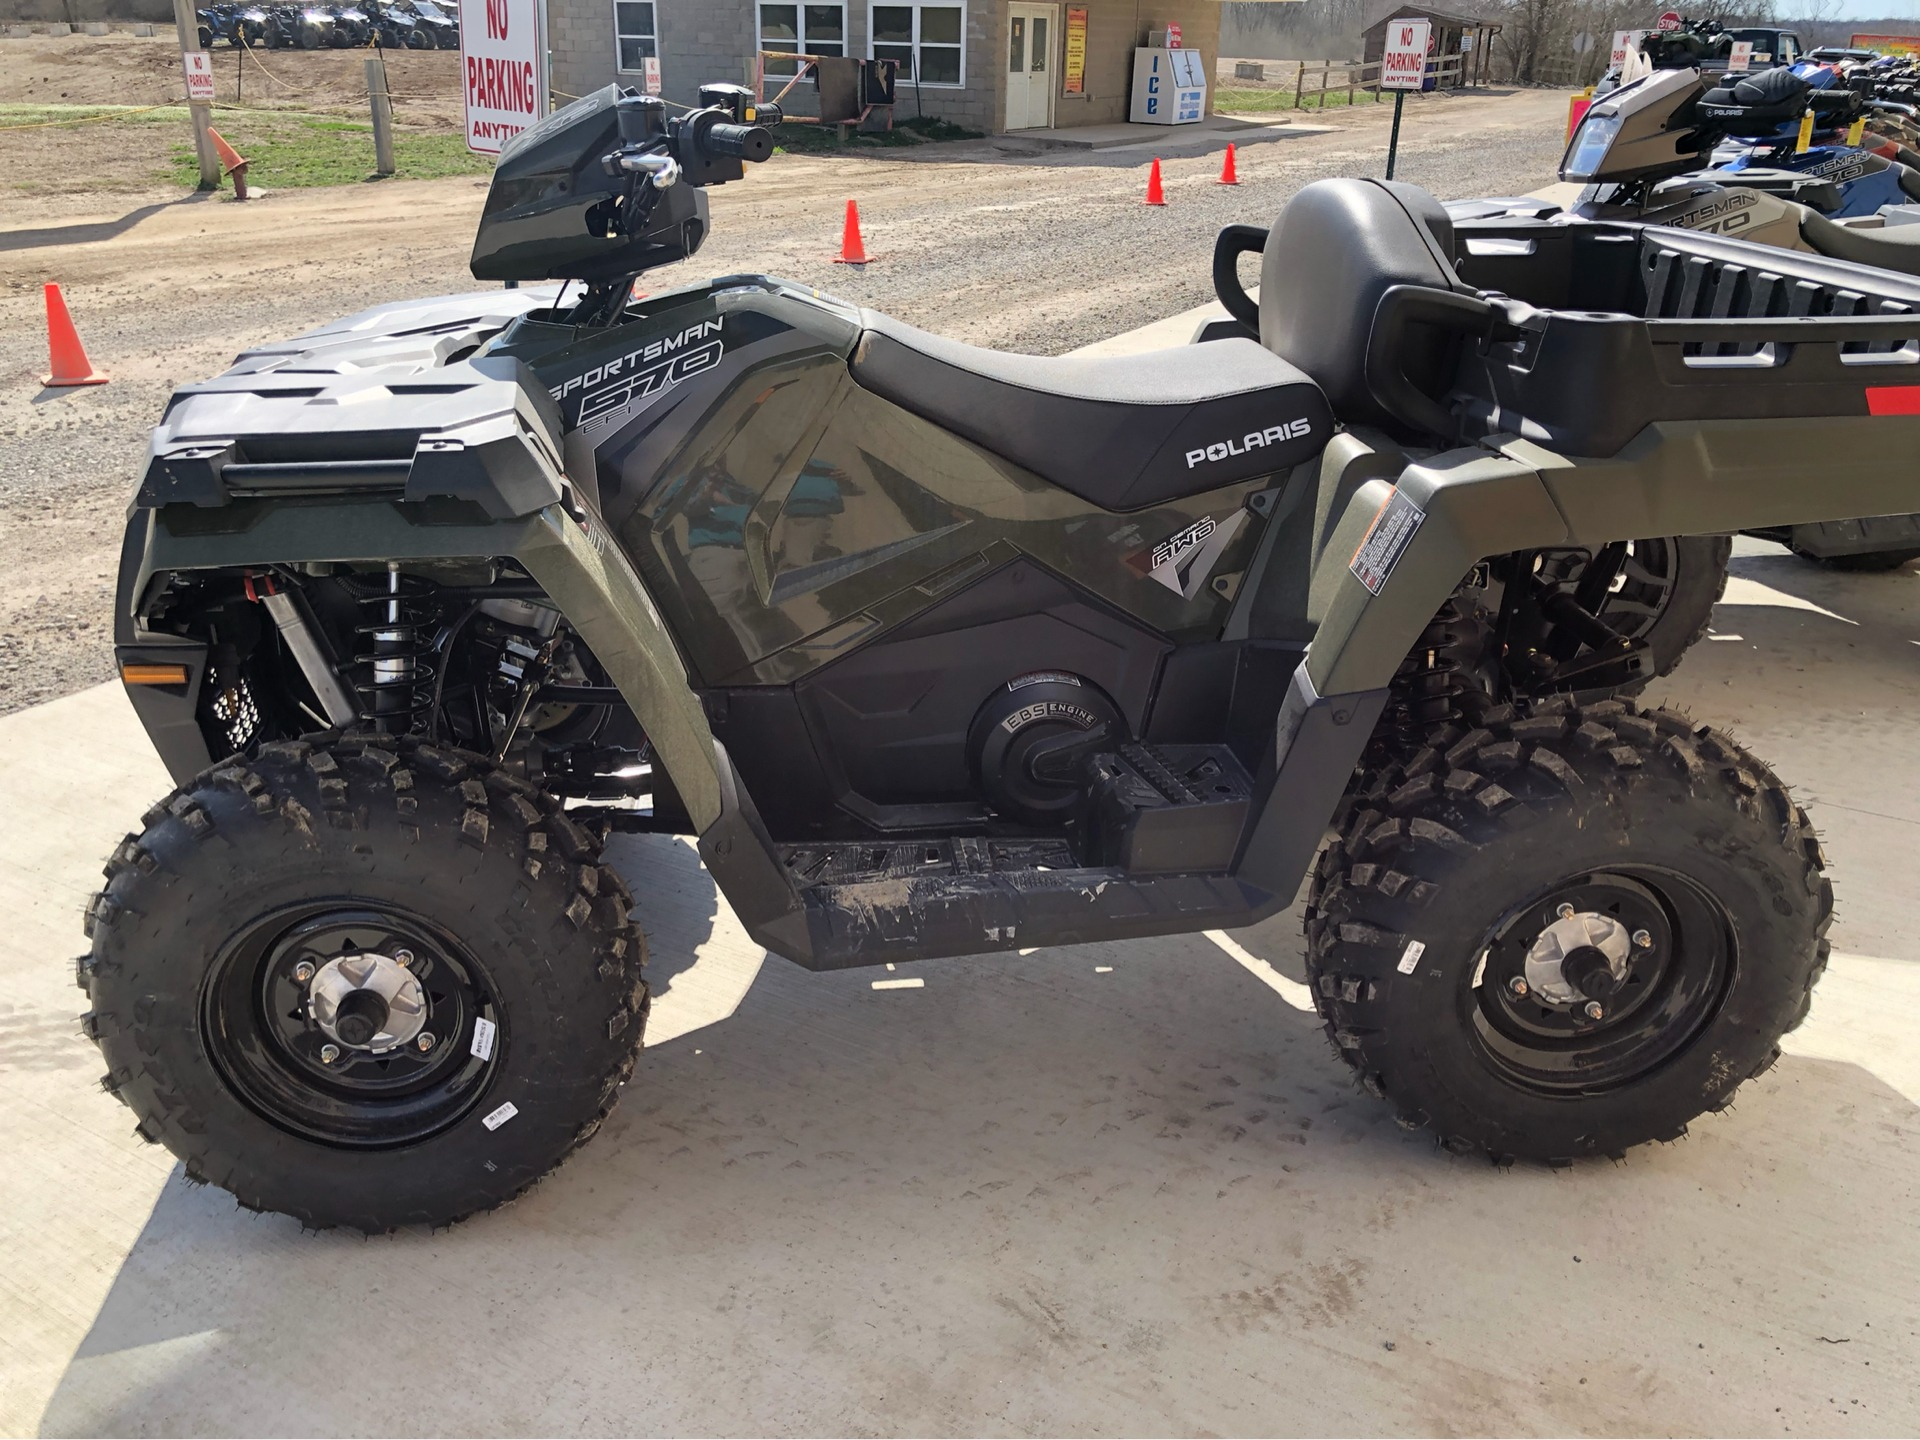 2020 Polaris Sportsman X2 570 in Attica, Indiana - Photo 3